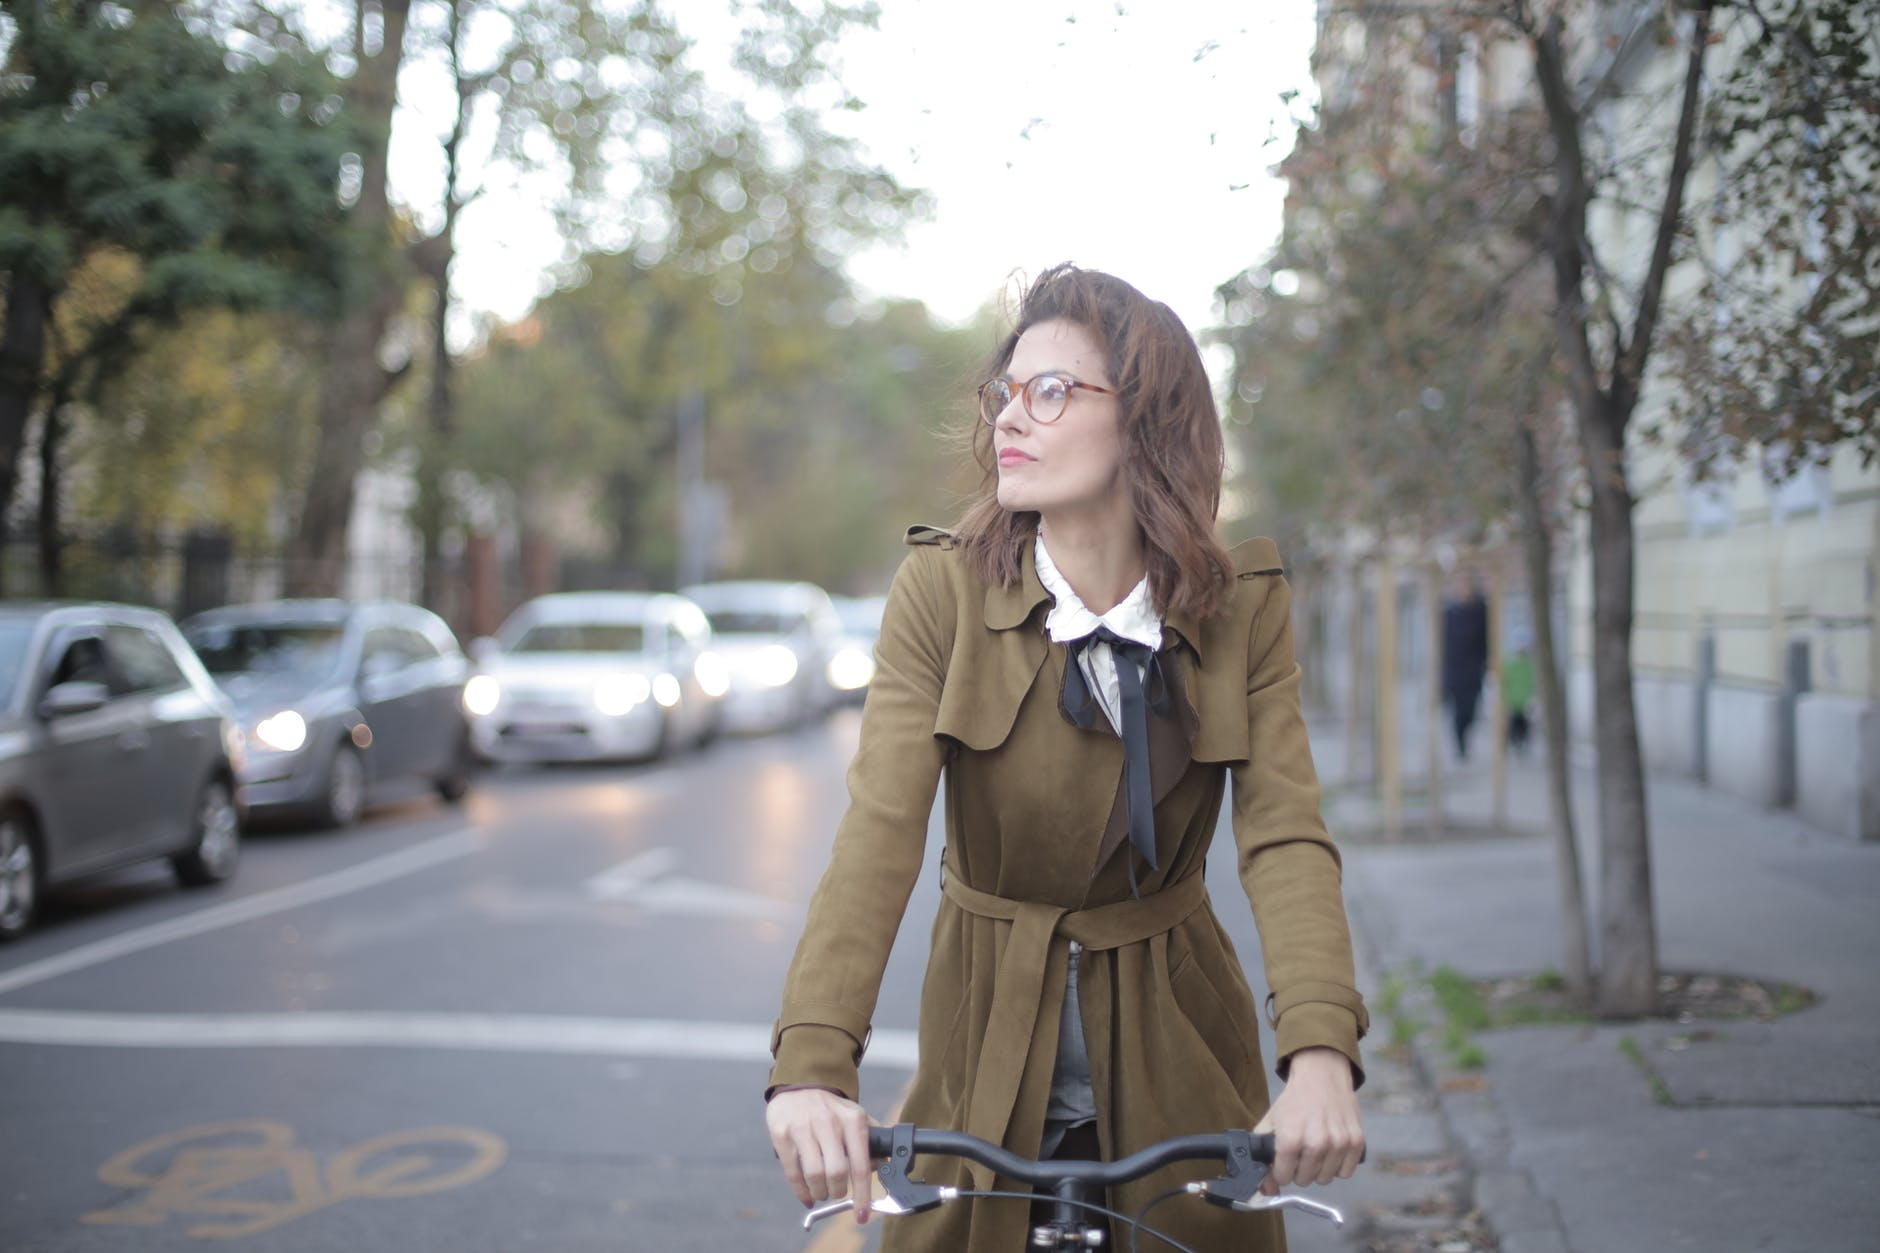 black bicycle driven by a woman wearing brown coat